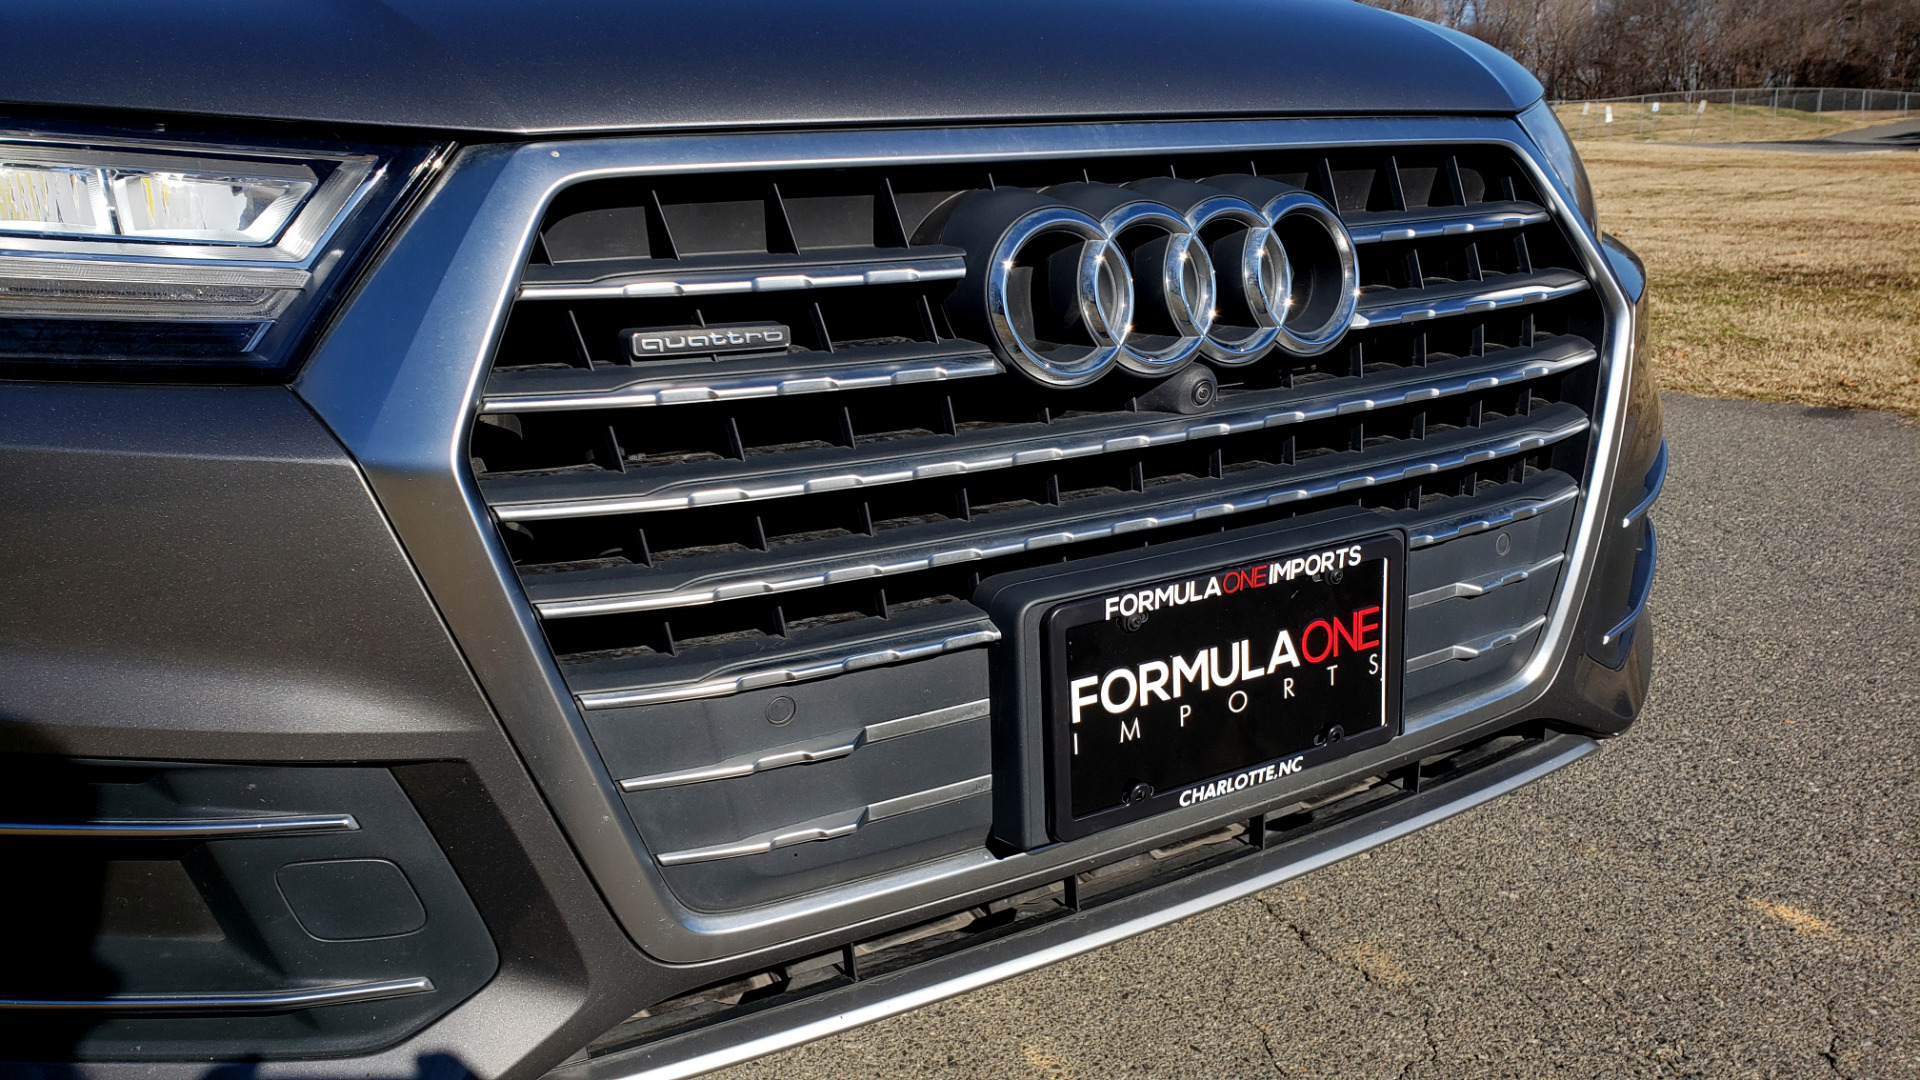 Used 2017 Audi Q7 PREMIUM PLUS / 2.0T TIPTRONIC / NAV / PANO-ROOF / 3-ROW / REARVIEW for sale $33,999 at Formula Imports in Charlotte NC 28227 9